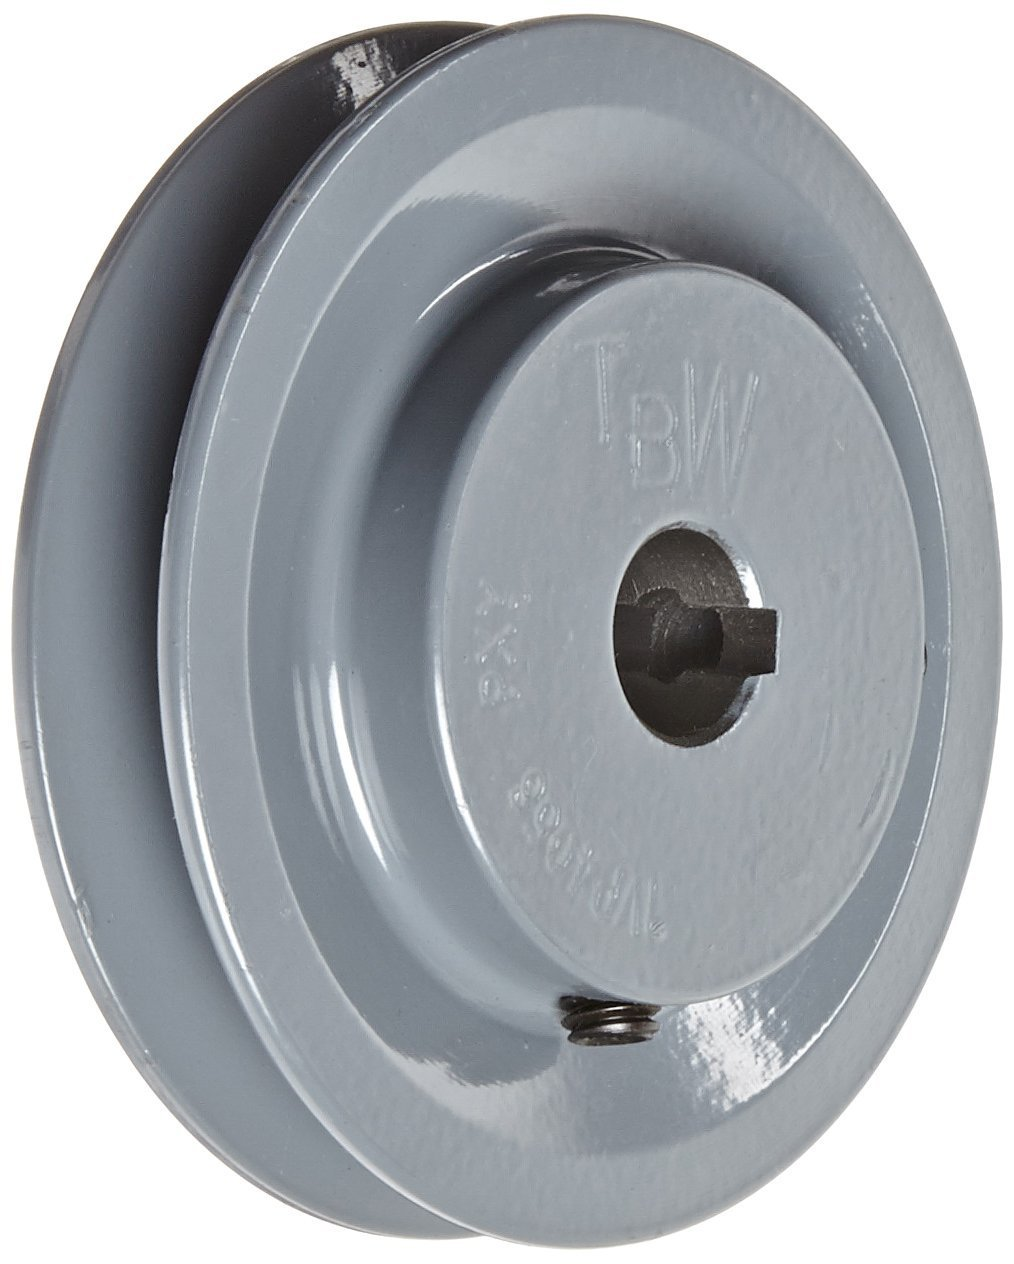 Gates 1VP60 Light Duty Variable Pitch Sheaves, 6'' OD, 1 Groove, 1-1/8'' Bore